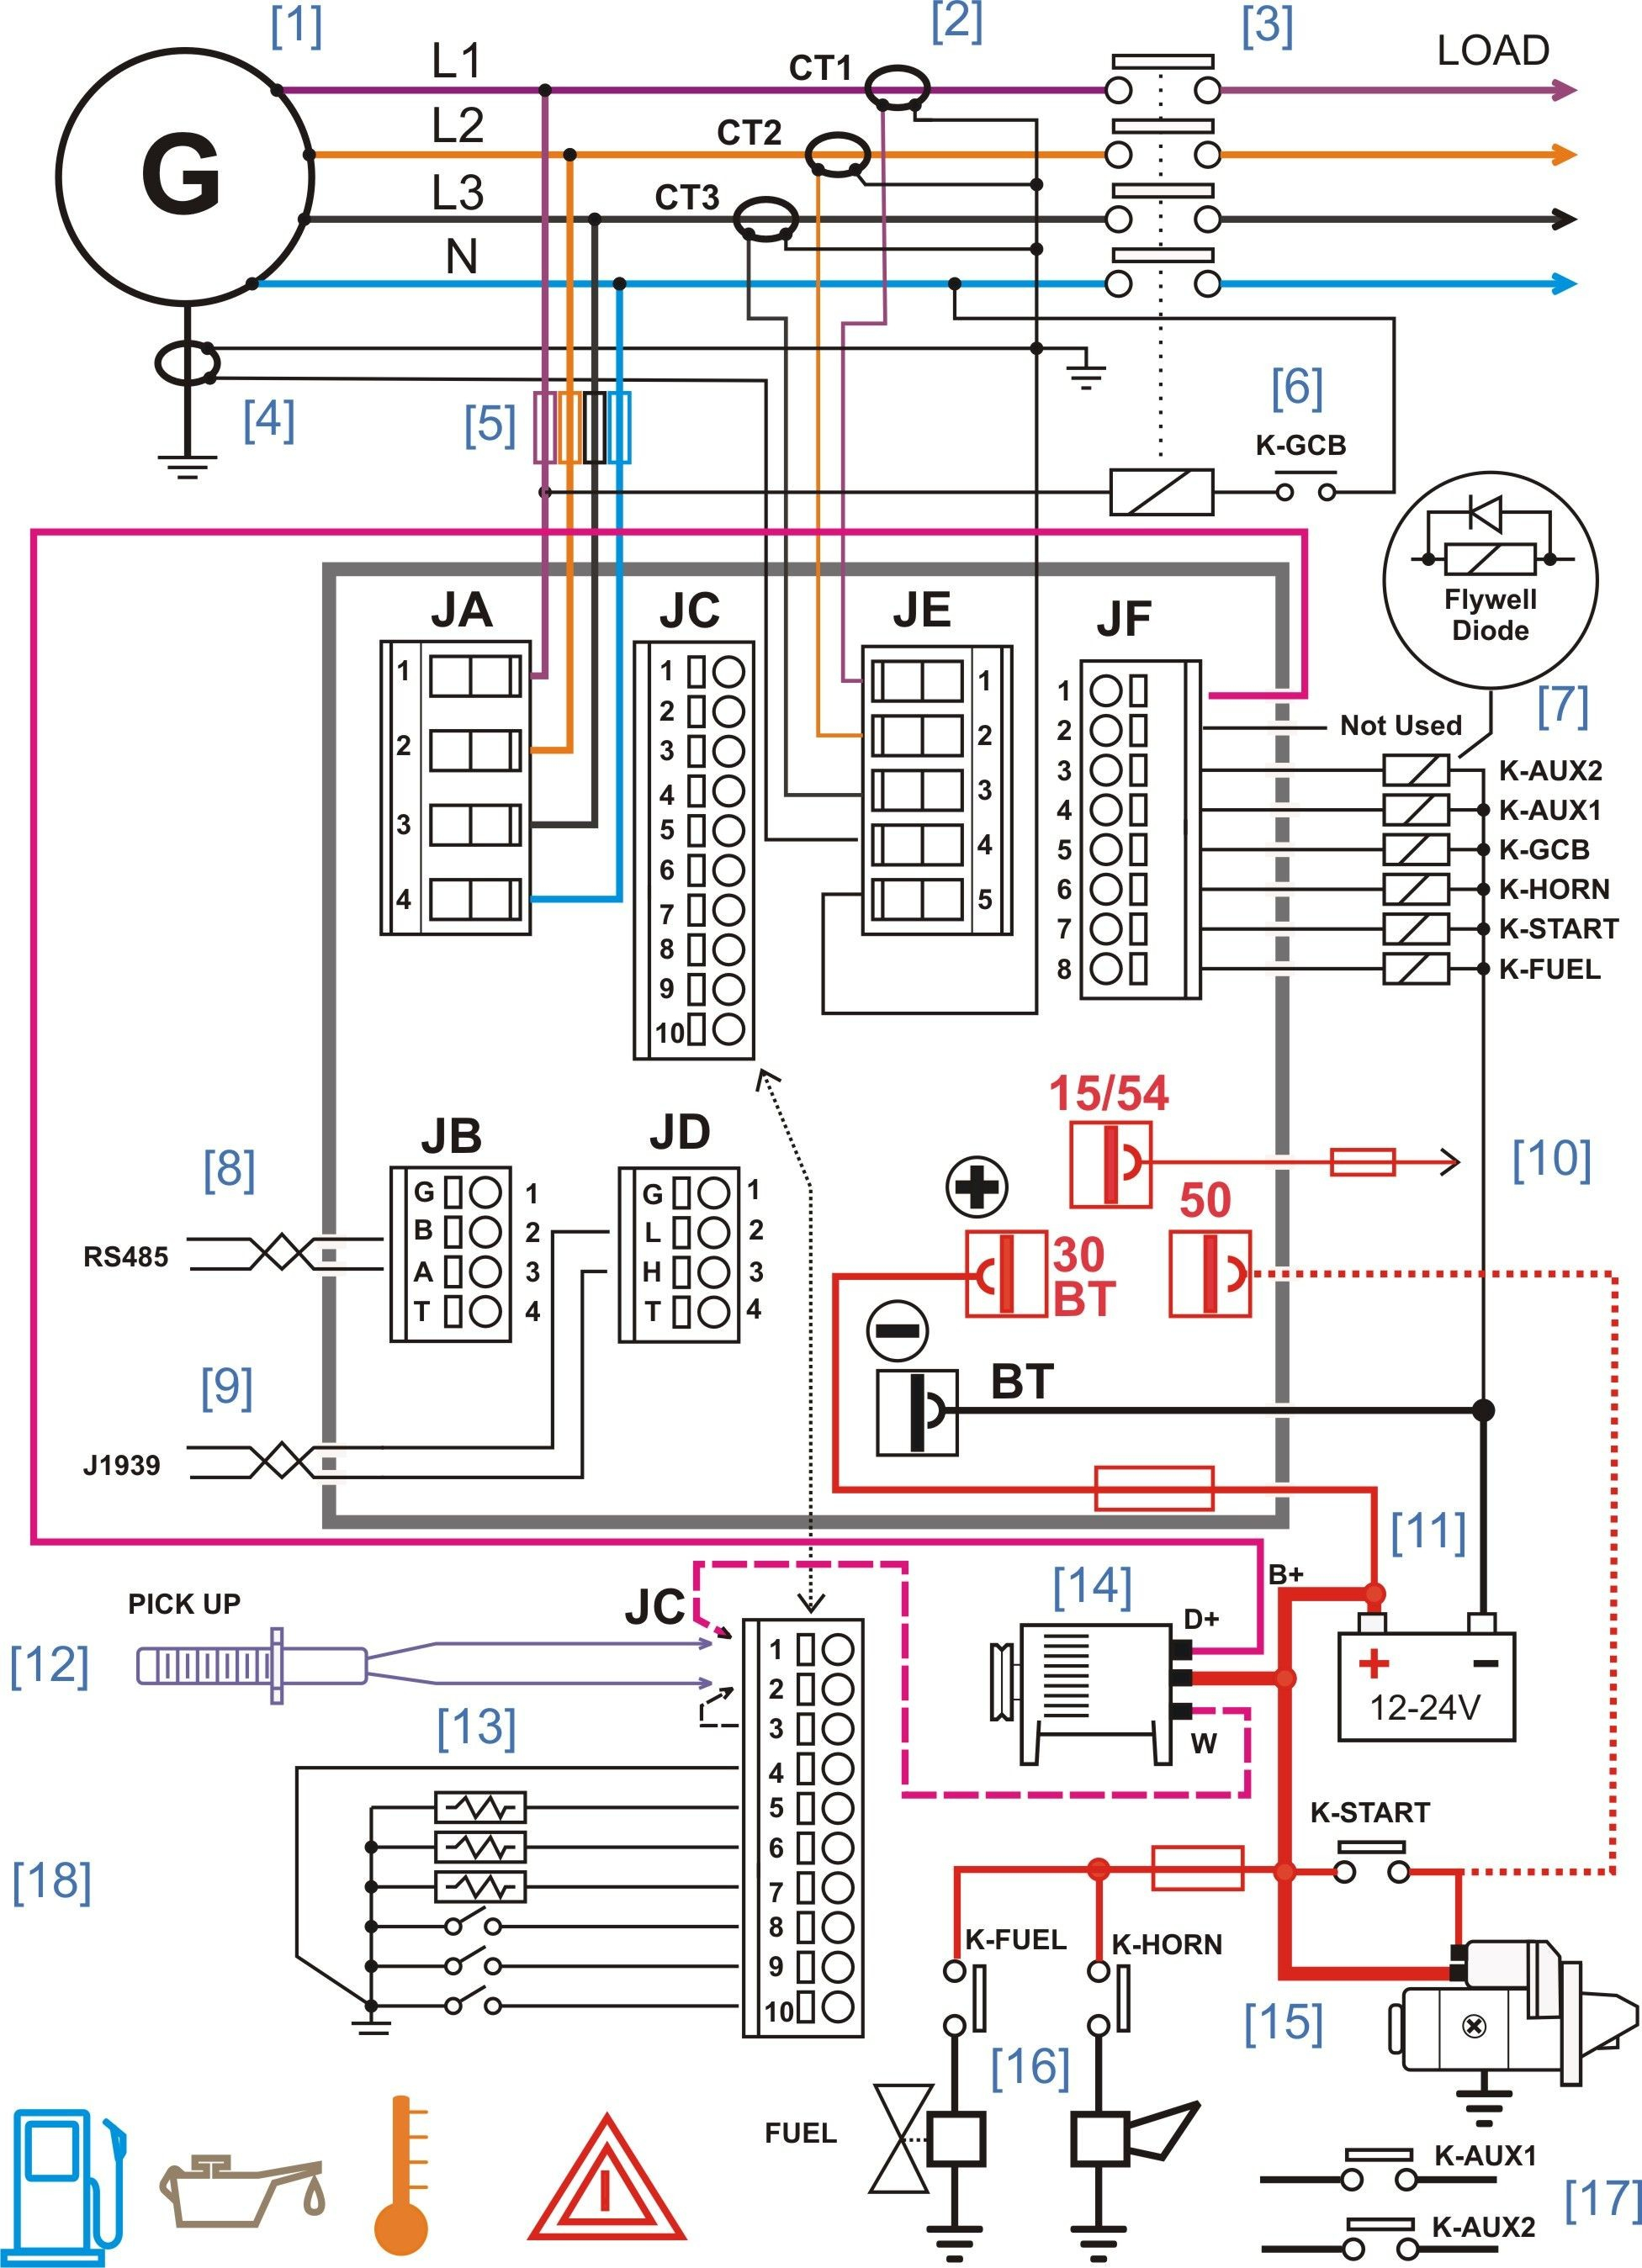 Diagram Reliance Generator Transfer Switch Wiring Diagram Gallery